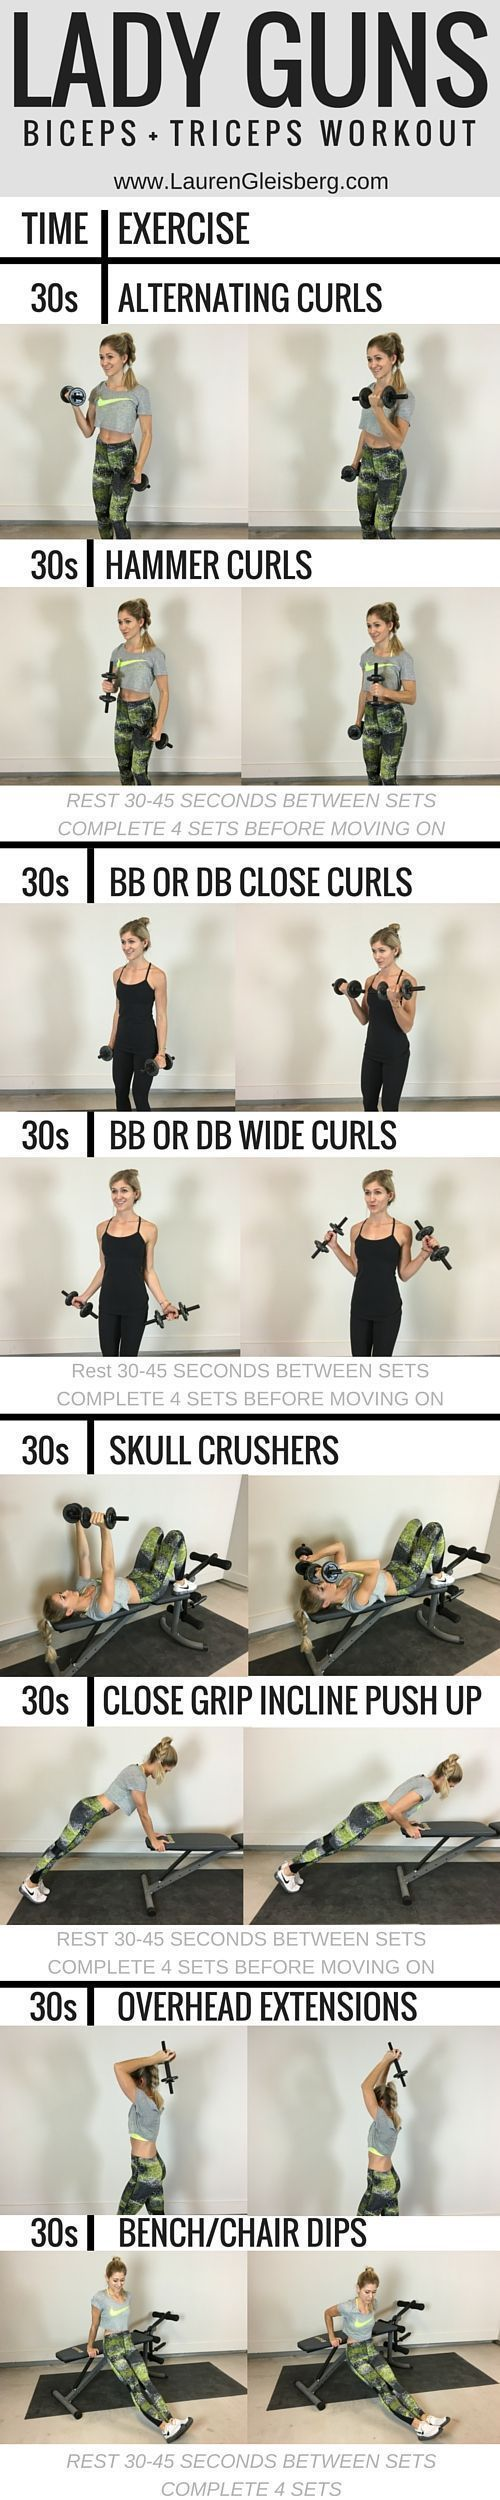 Lady Guns! Grab your dumbbells for this effective strengthening workout. These upper body exercises are great to add to your fitness routine for a lean and sculpted look.